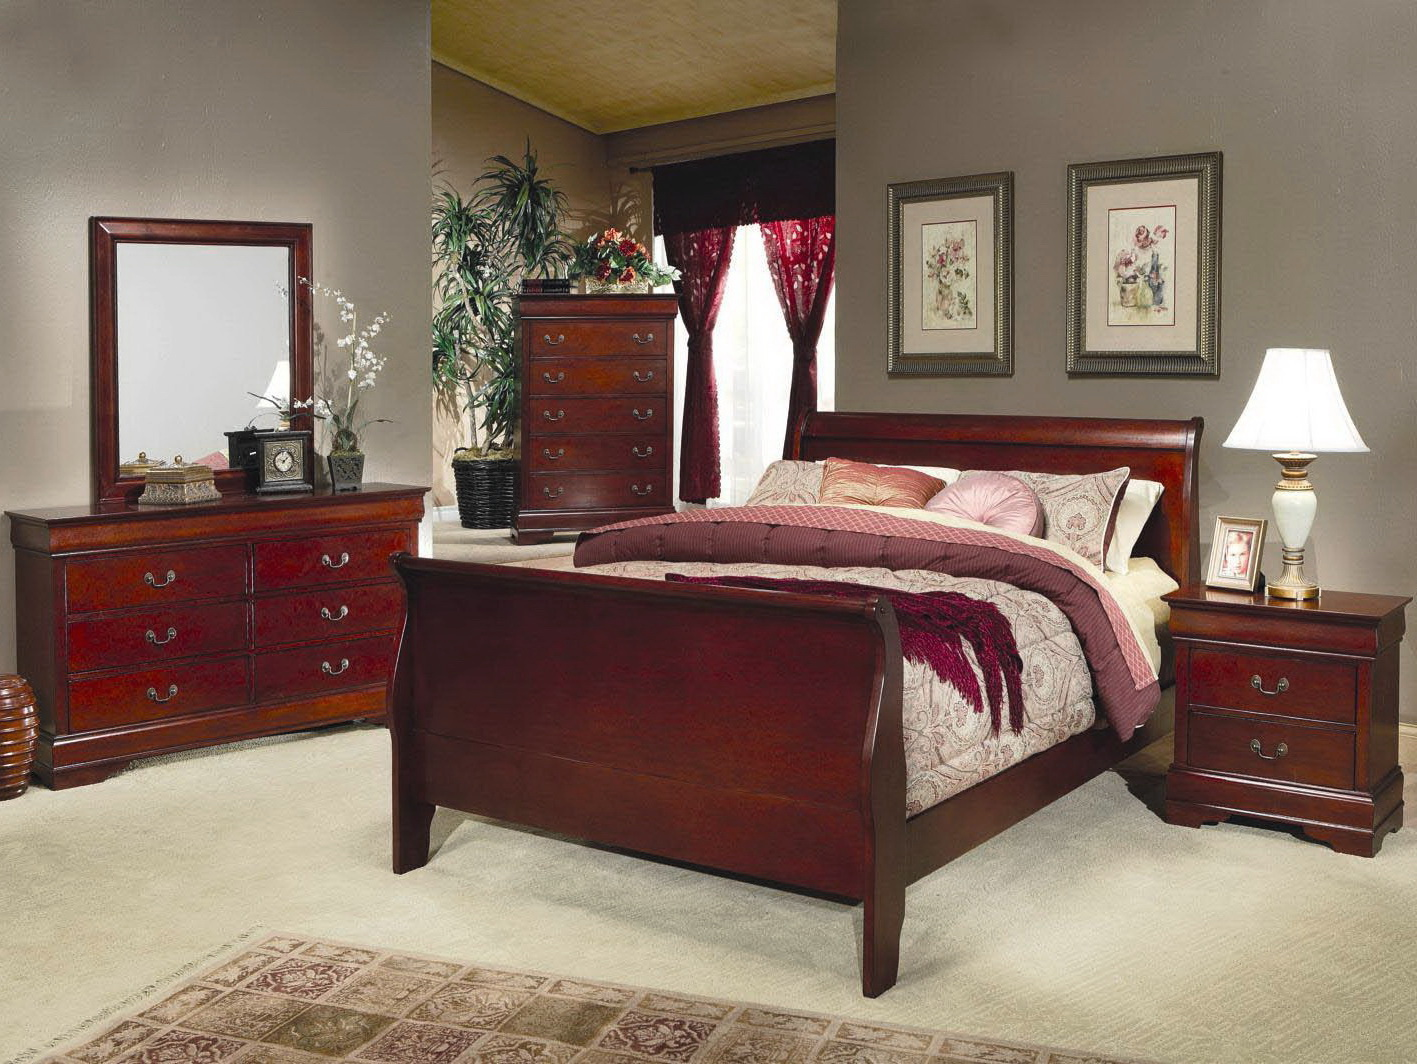 Adult Bedrooms | Family Discount Furniture